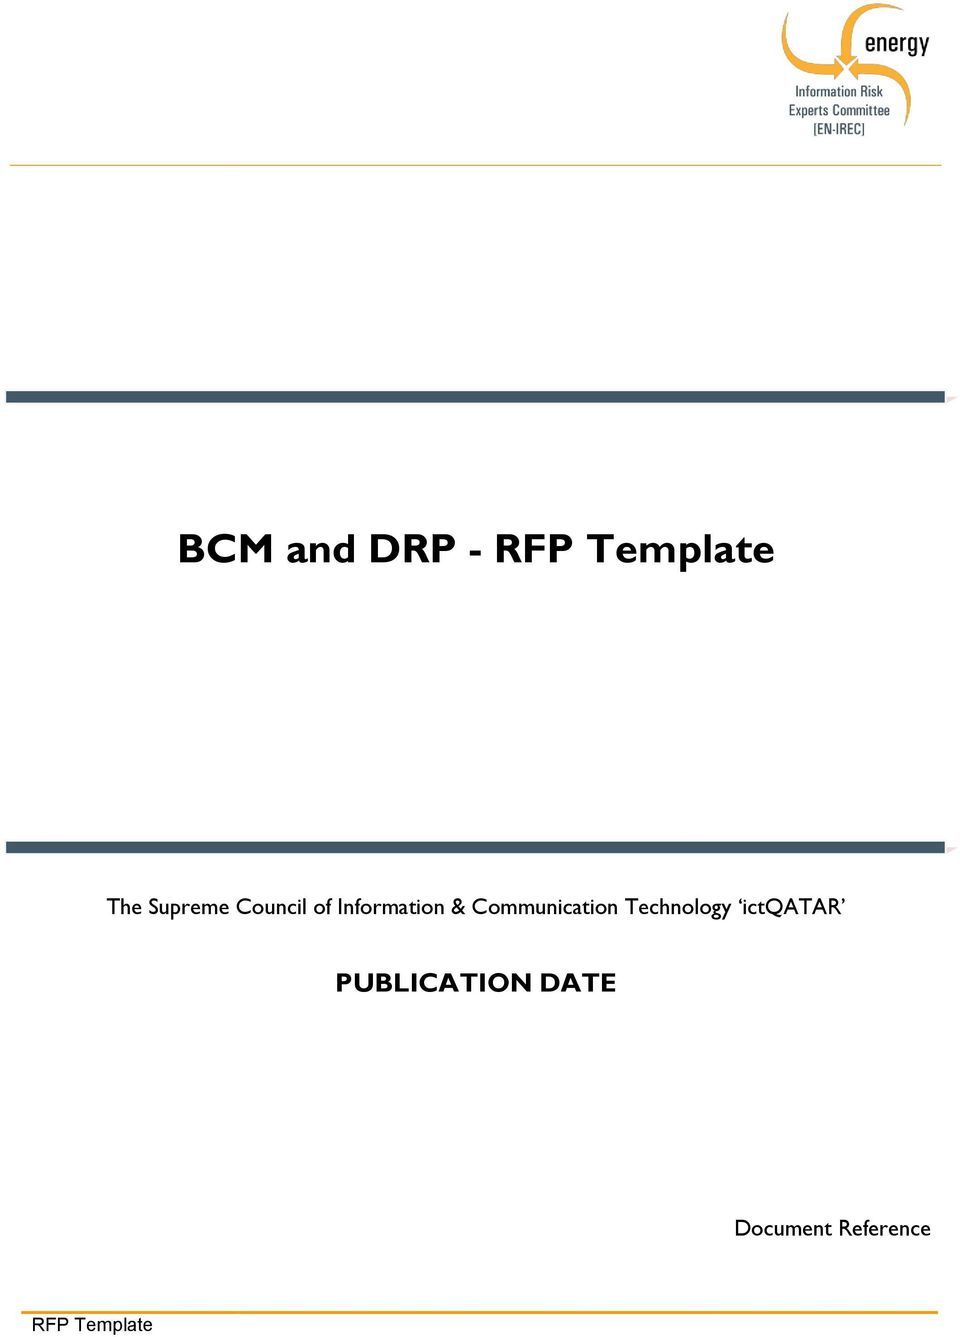 BCM and DRP - RFP Template - PDF